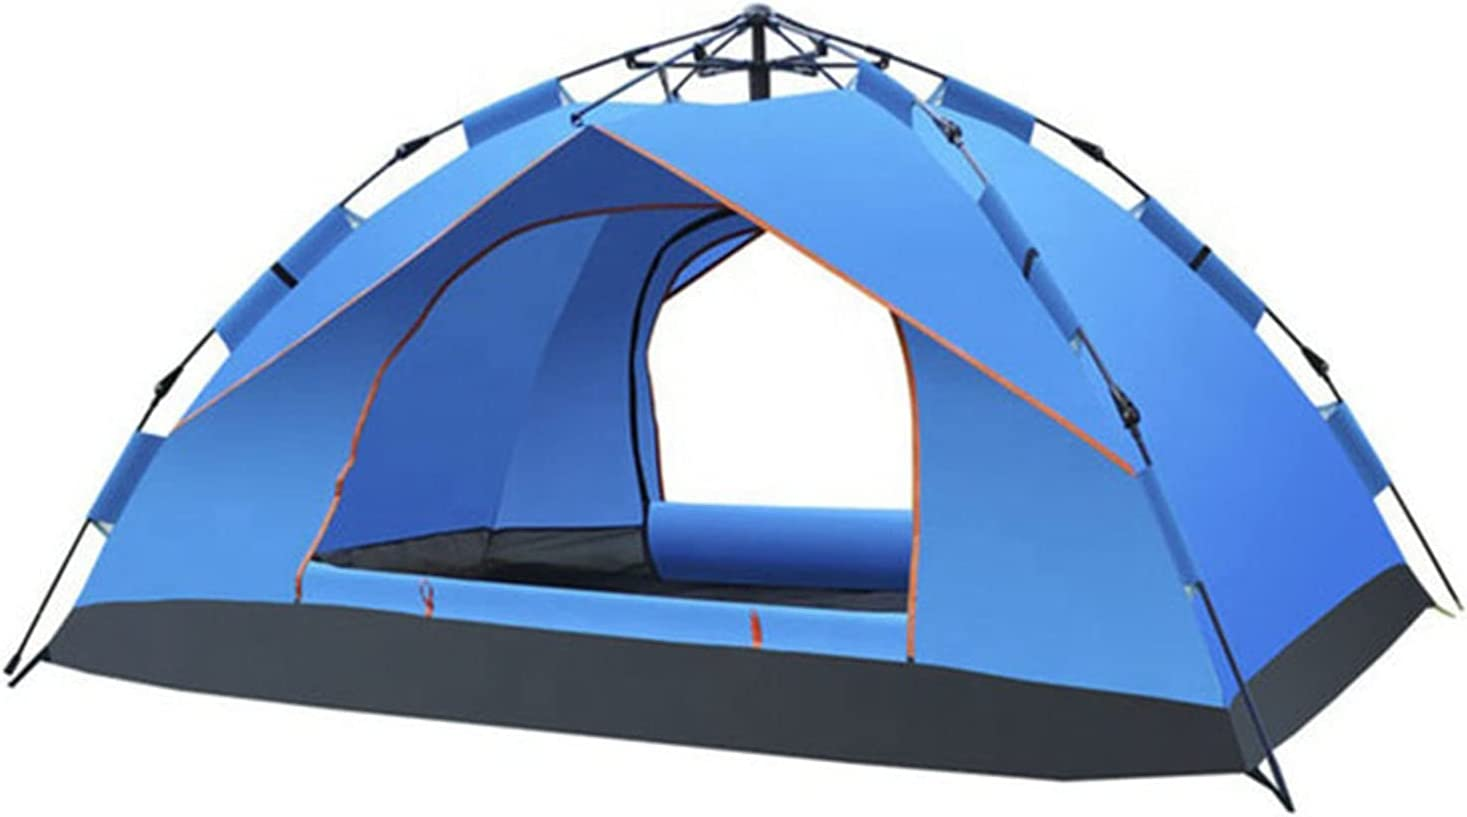 DFLKP Pop Up Tent Ranking TOP18 Family 2 Fashion Ins Camping Portable Person